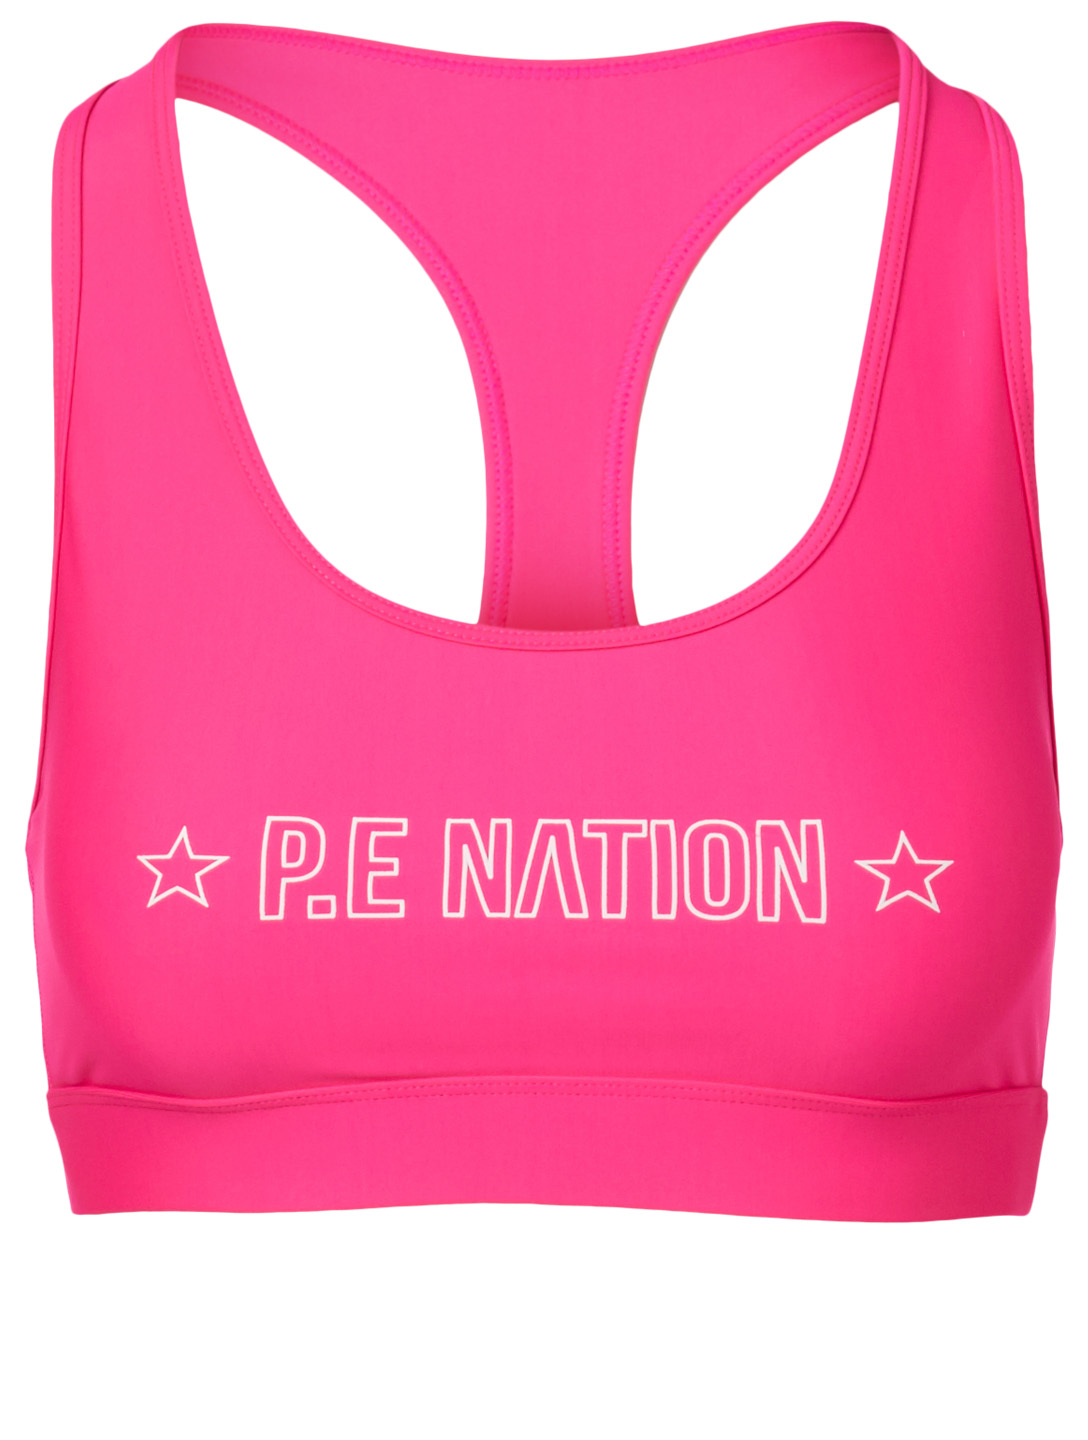 PE NATION Swish Sports Bra Women's Pink